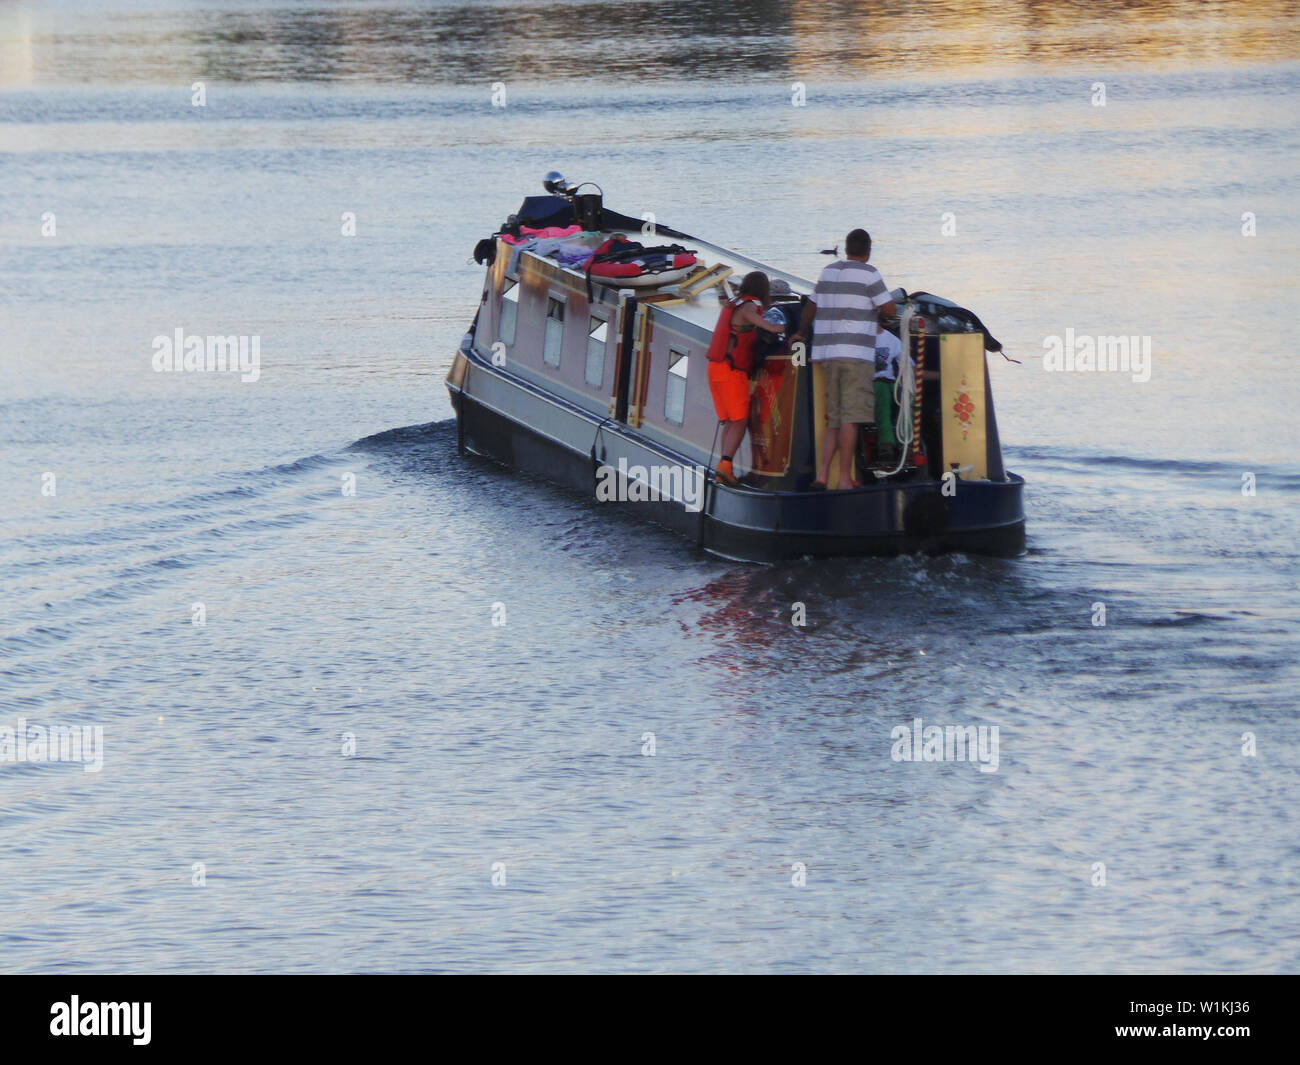 Reading, UK. 30th July 2013. A narrowboat peacefully heads down the River Thames - Stock Image